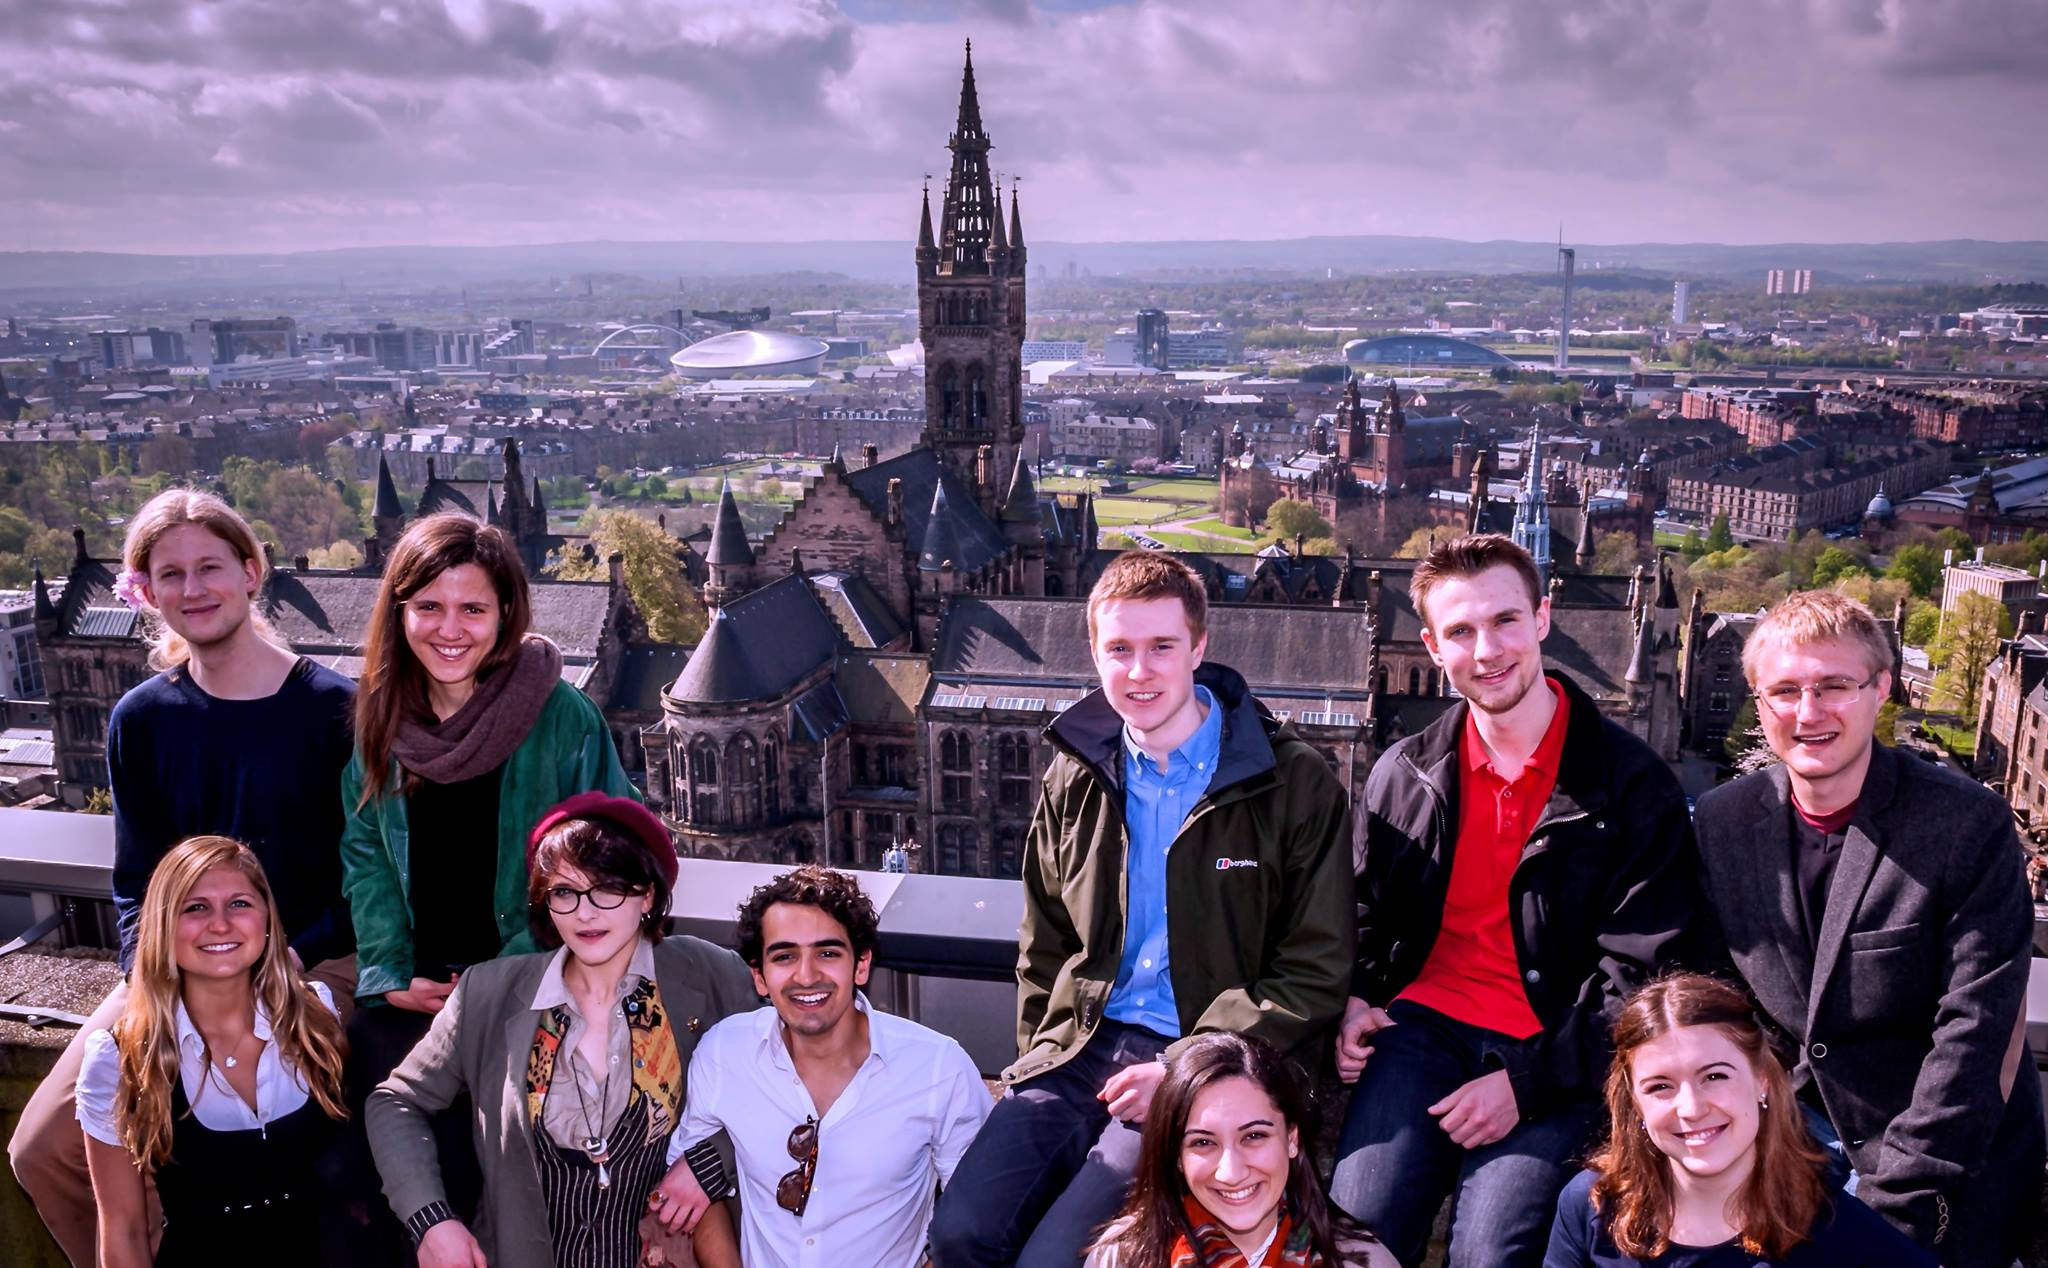 University of Glasgow official rep